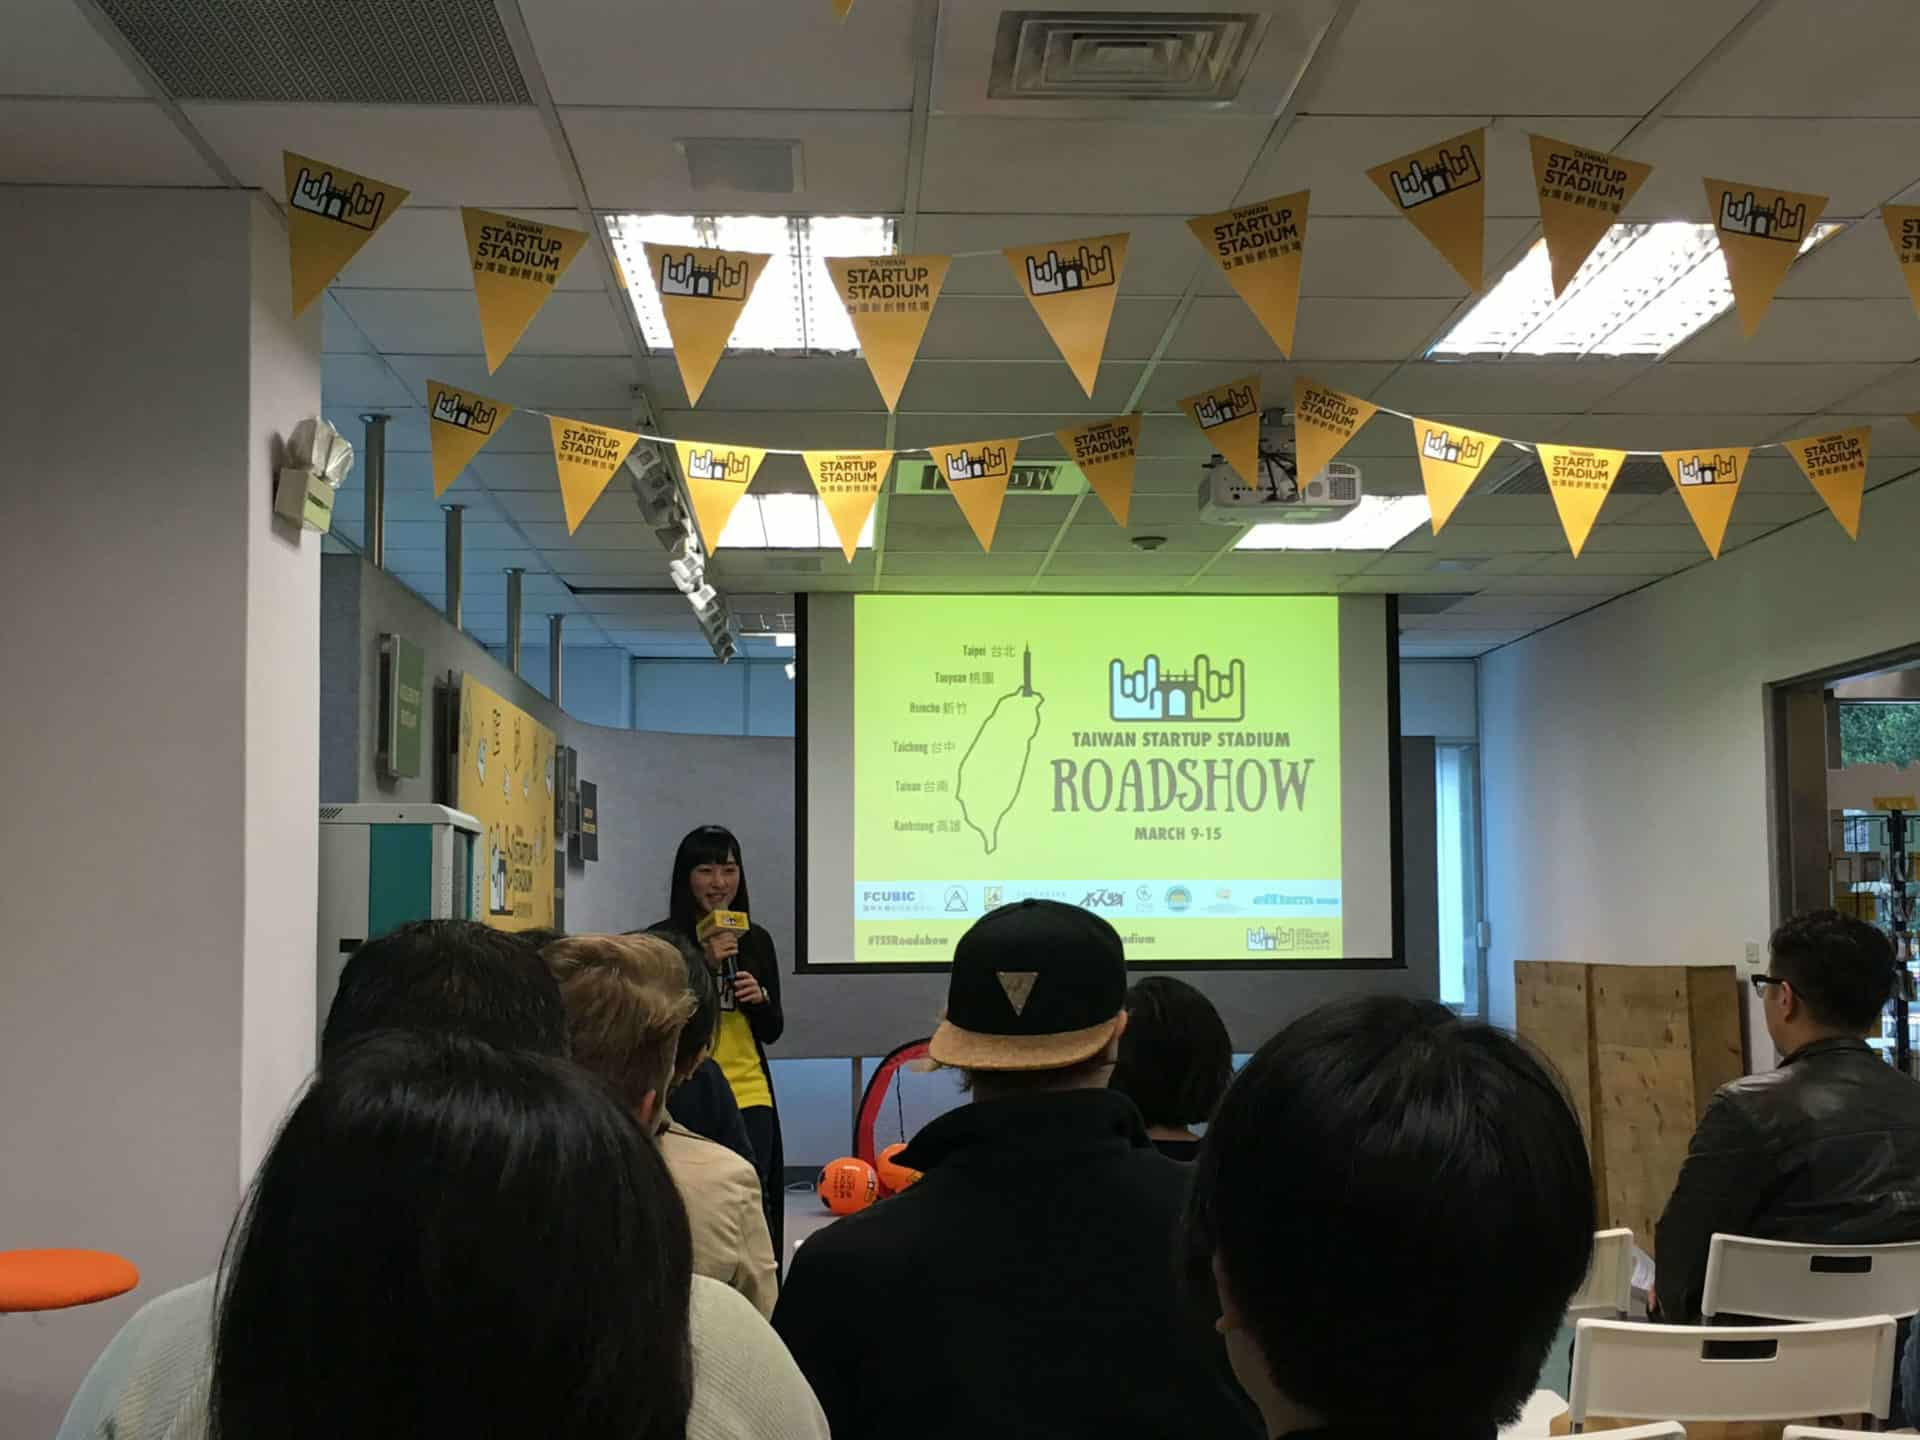 TSS Roadshow in Taipei: All About Tech Startups